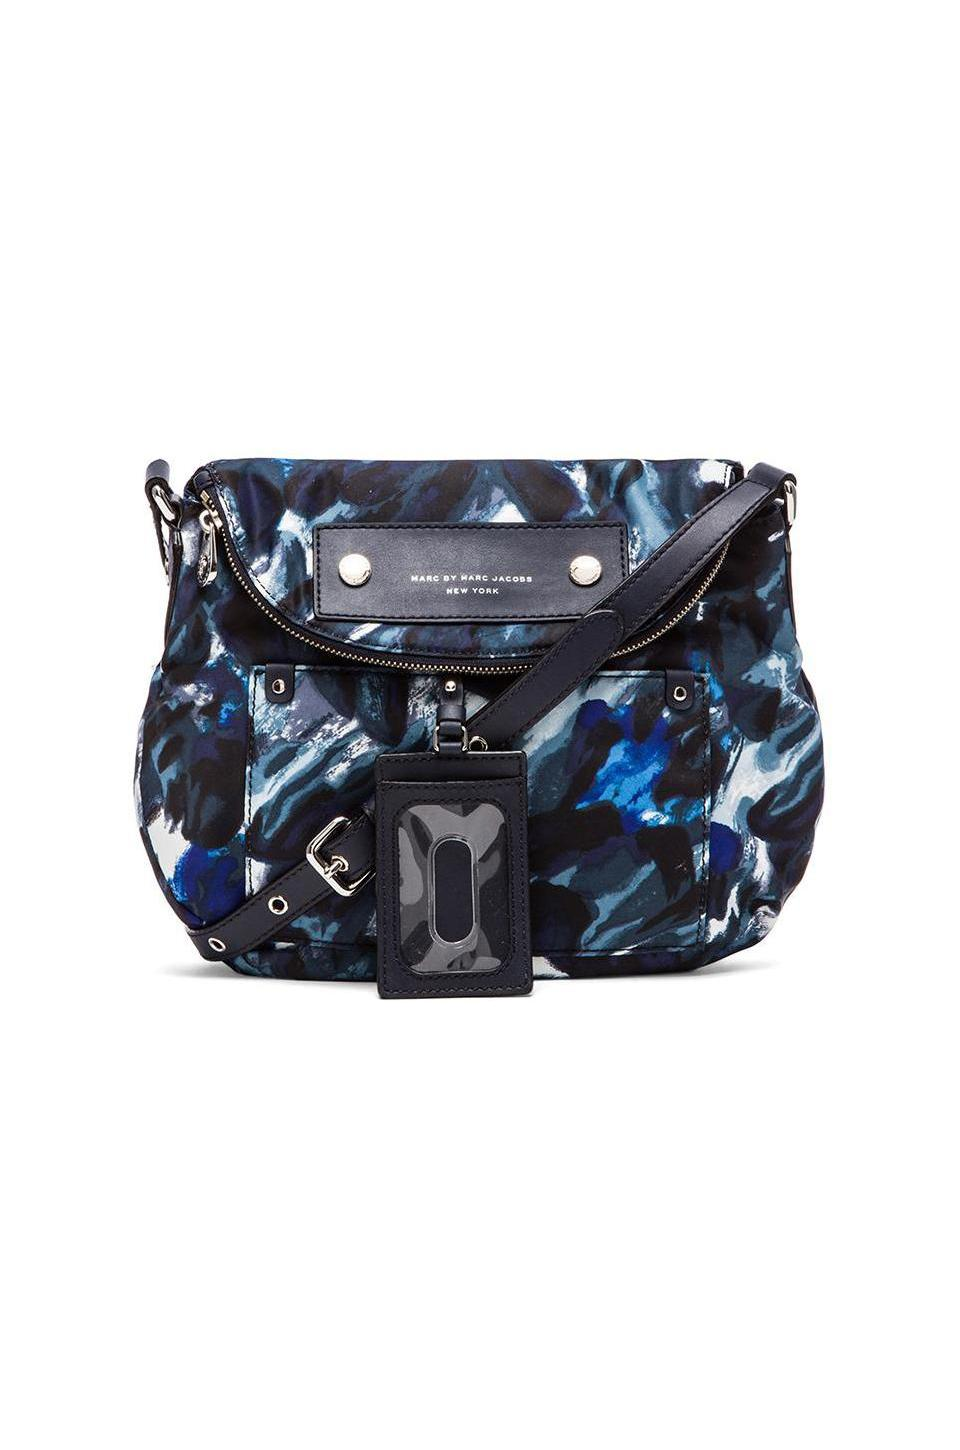 Marc by Marc Jacobs Preppy Nylon Painterly Blue Print Natasha in Blue Multi